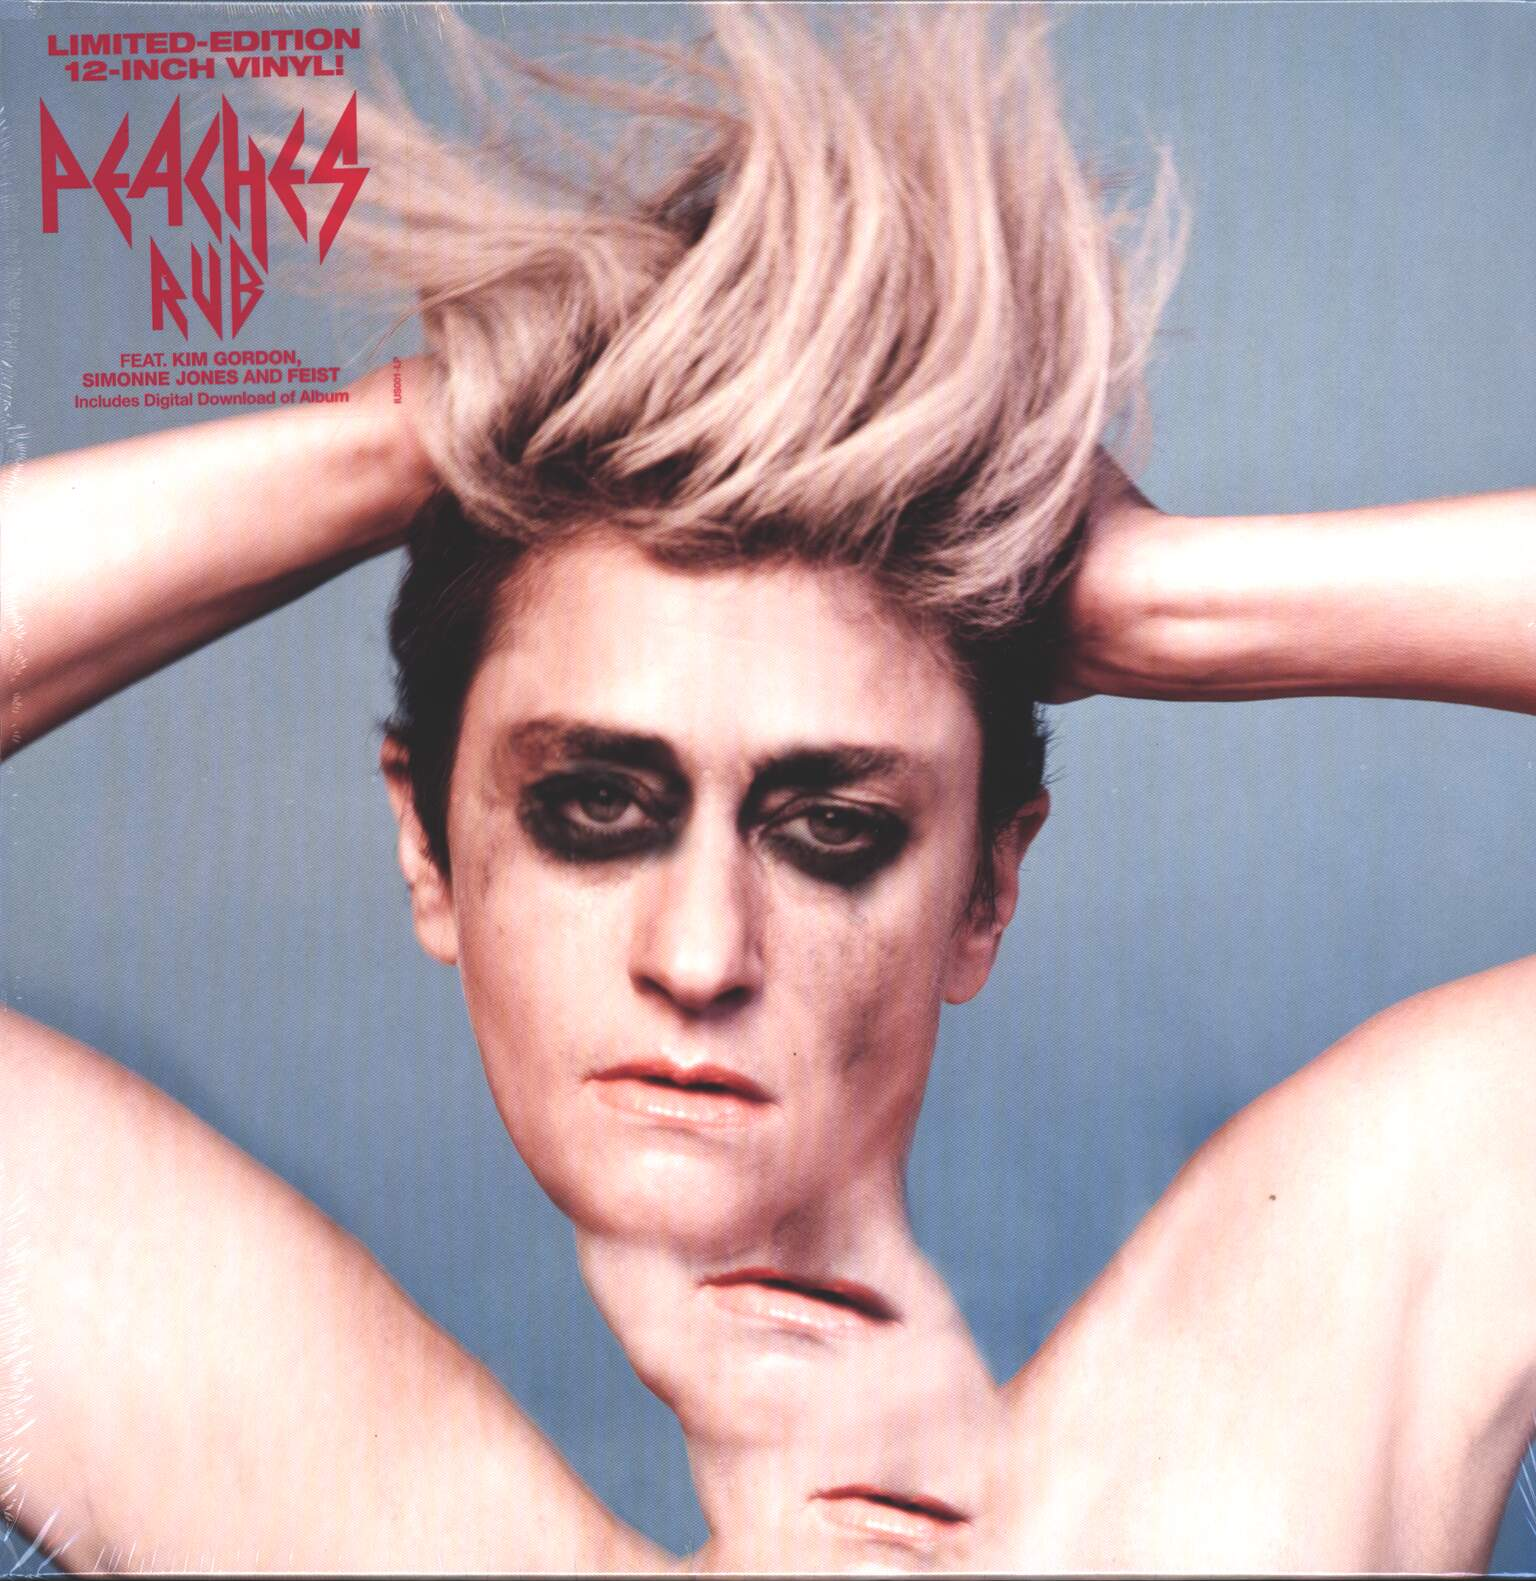 Peaches: Rub, 1×LP (Vinyl)